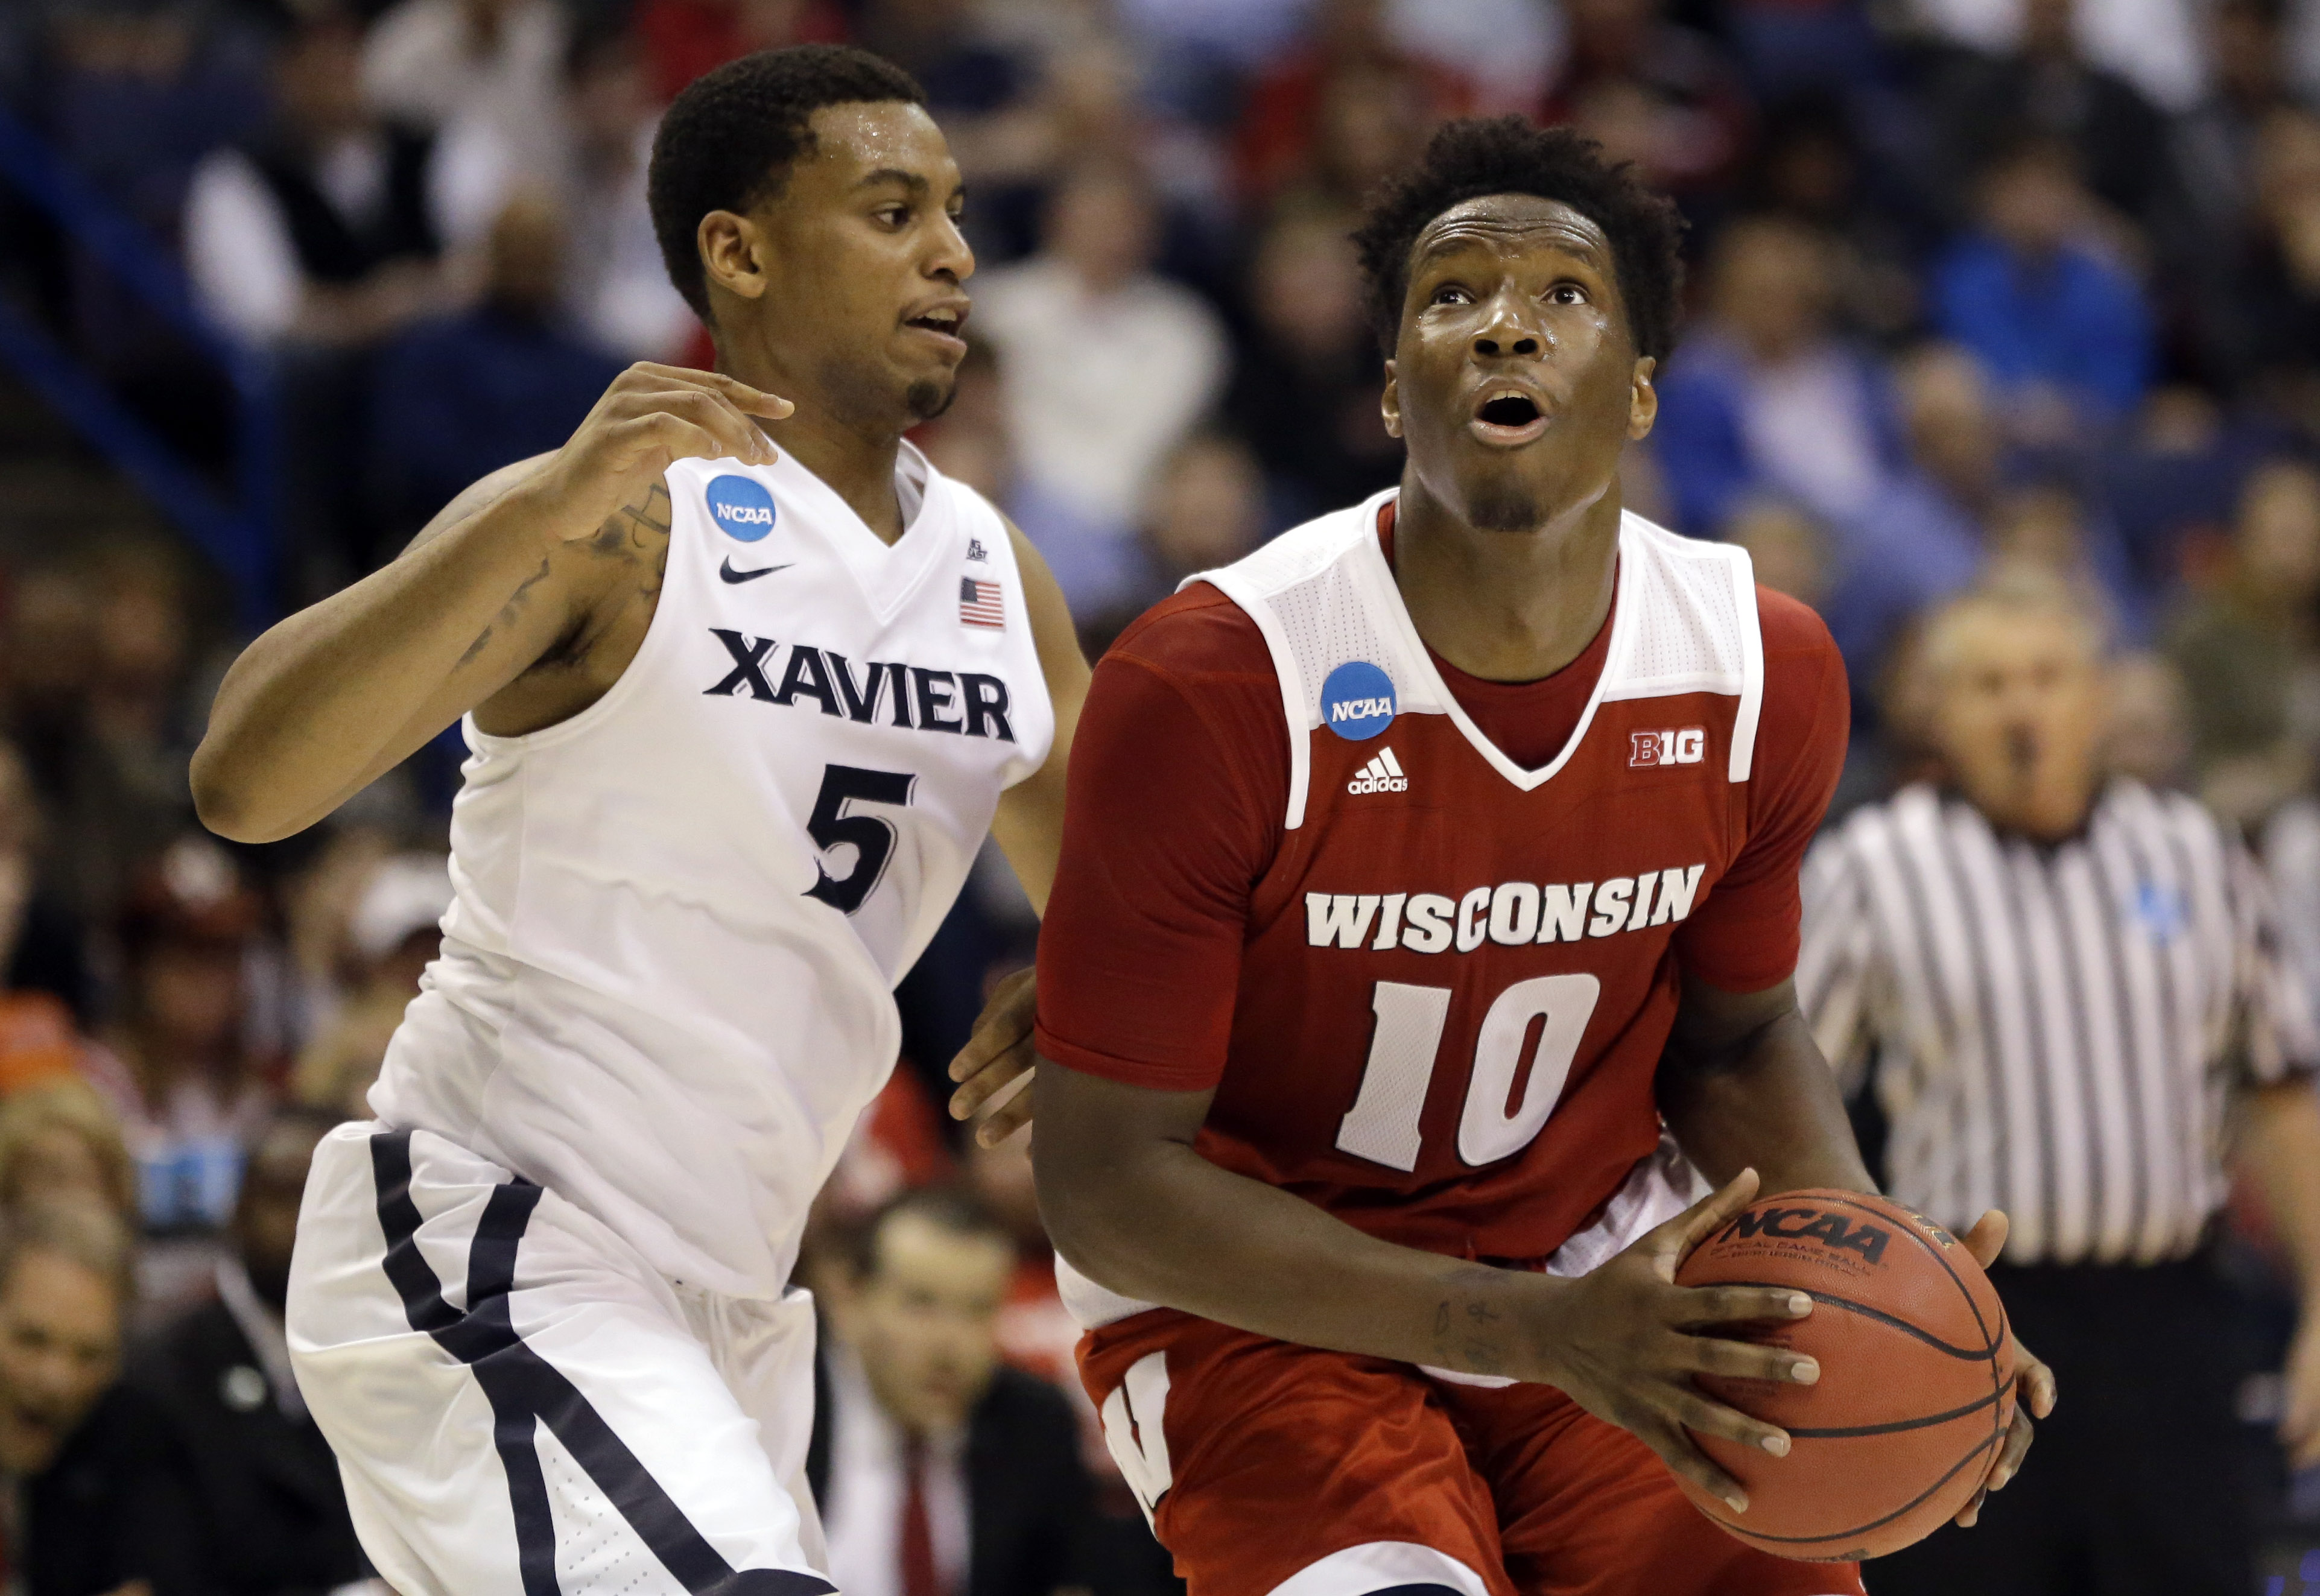 Wisconsin's Nigel Hayes looks to the basket as Xavier's Trevon Bluiett, left, defends during the second half in a second-round men's college basketball game in the NCAA Tournament, Sunday, March 20, 2016, in St. Louis. Wisconsin won 66-63. (AP Photo/Jeff